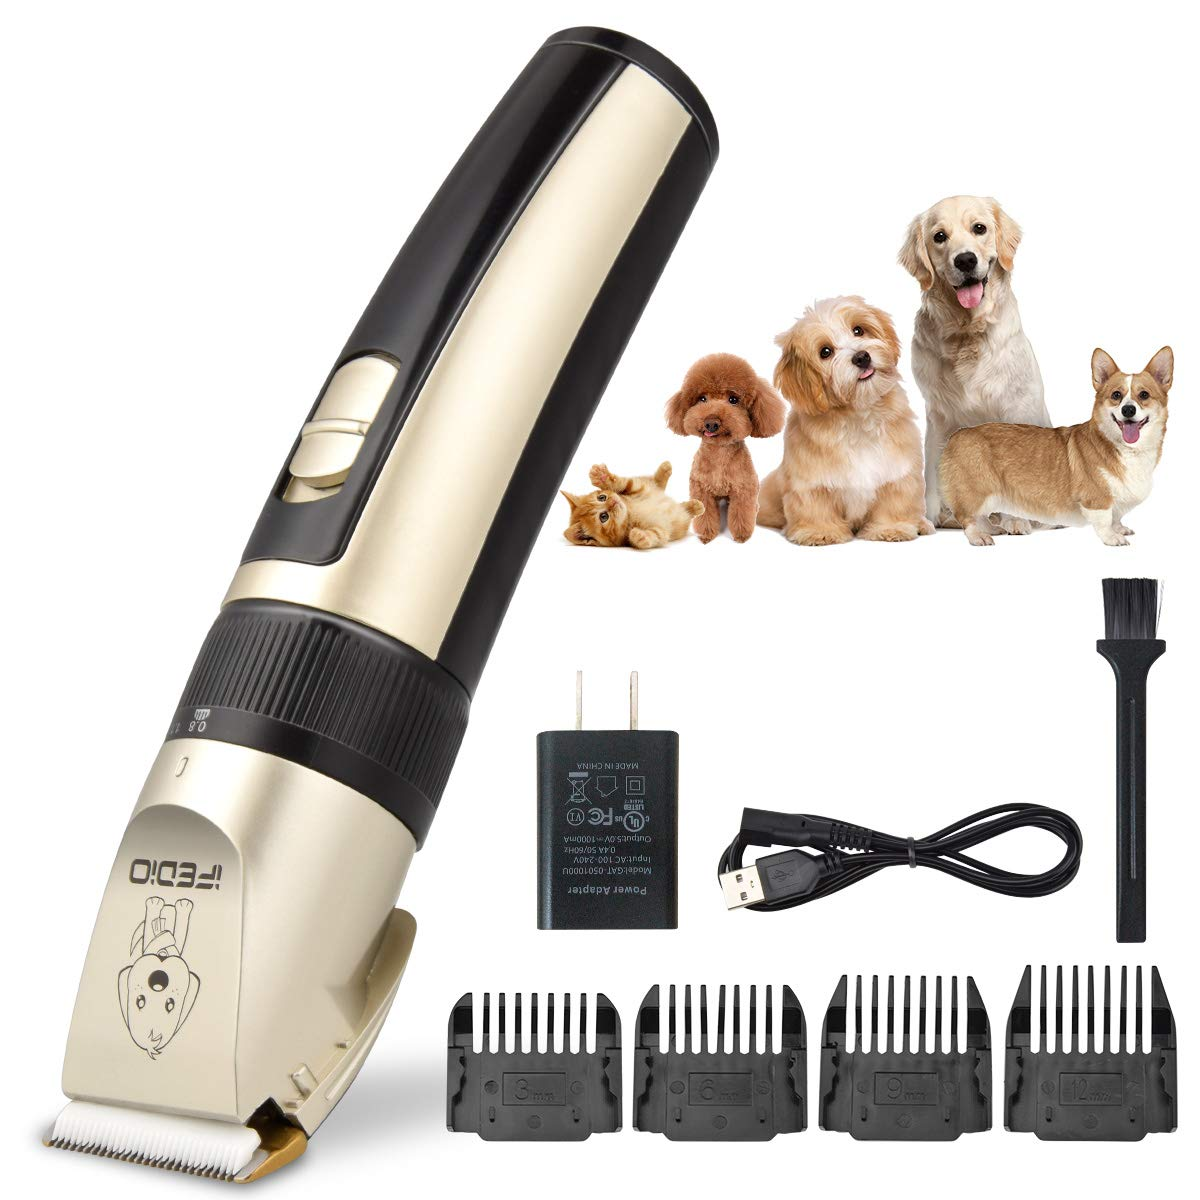 TXPY Professional Dog Clippers Rechargeable Dog Grooming Kit Cordless Pet Grooming Clippers Low Noise Dog Grooming Clippers Pet Clippers Suitable Dogs Cats Other Pets House Animals